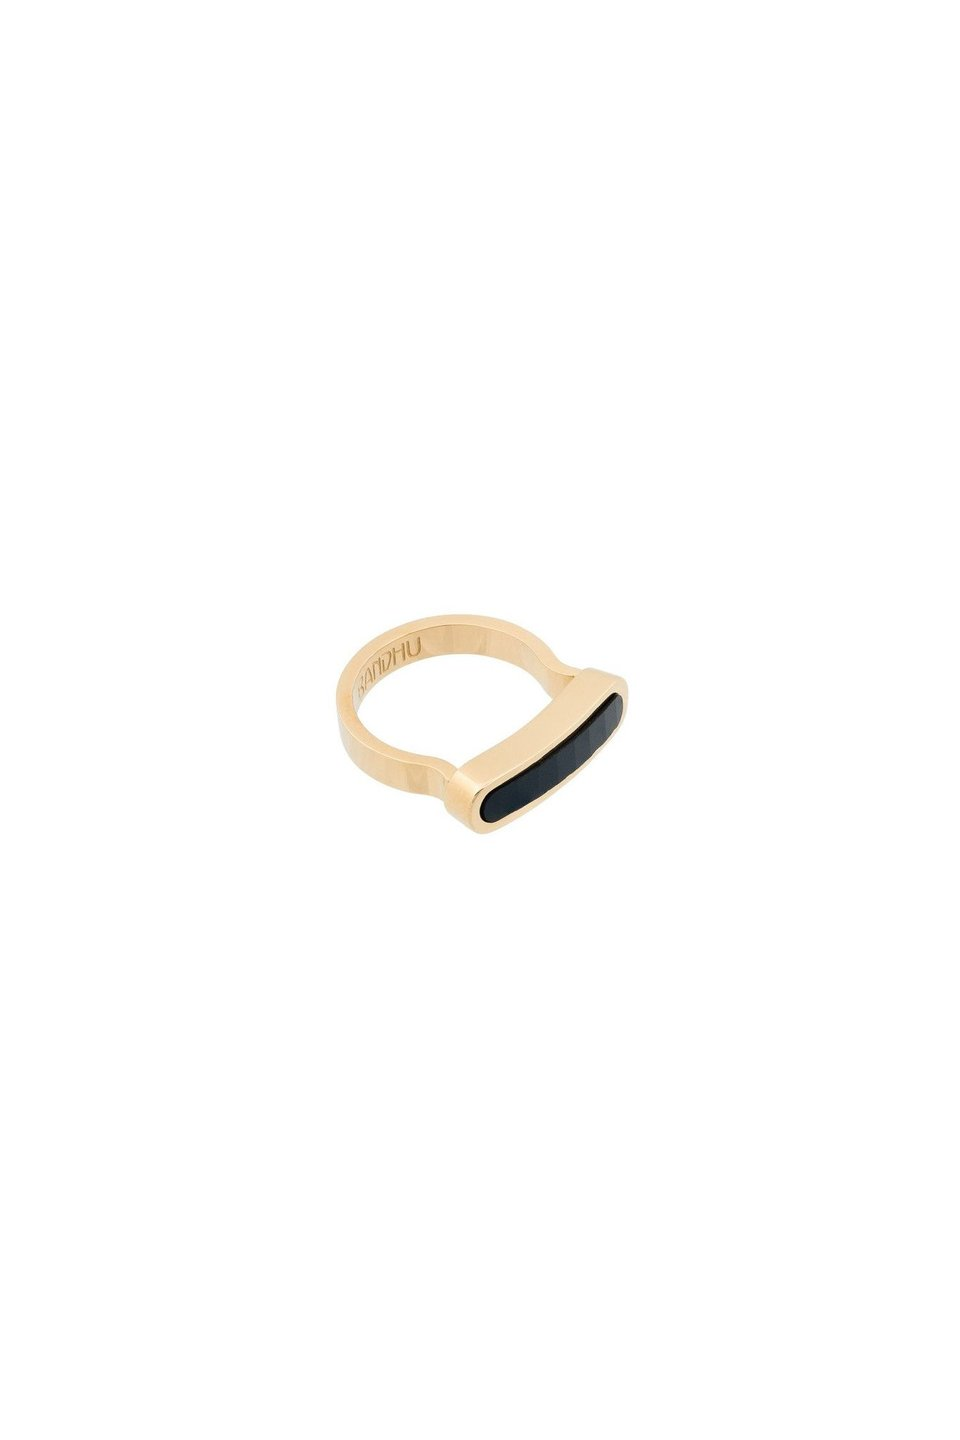 Energy Muse Ring - Gold